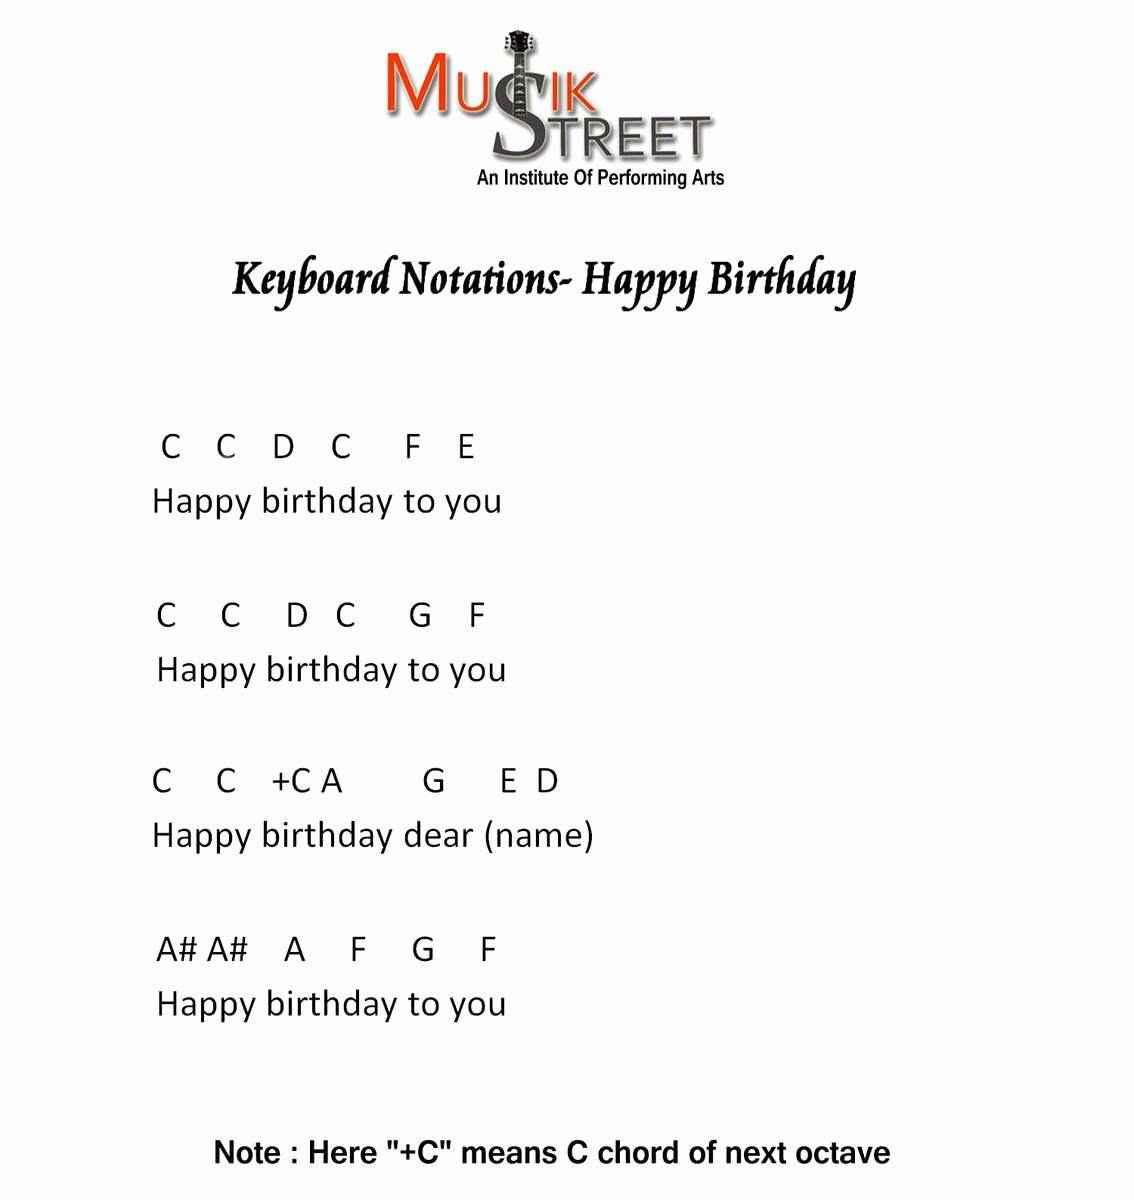 casio notes of happy birthday ; chord-keyboard-happy-birthday-lovely-musik-street-on-twitter-quotkeyboard-piano-notes-of-song-quothappy-of-chord-keyboard-happy-birthday